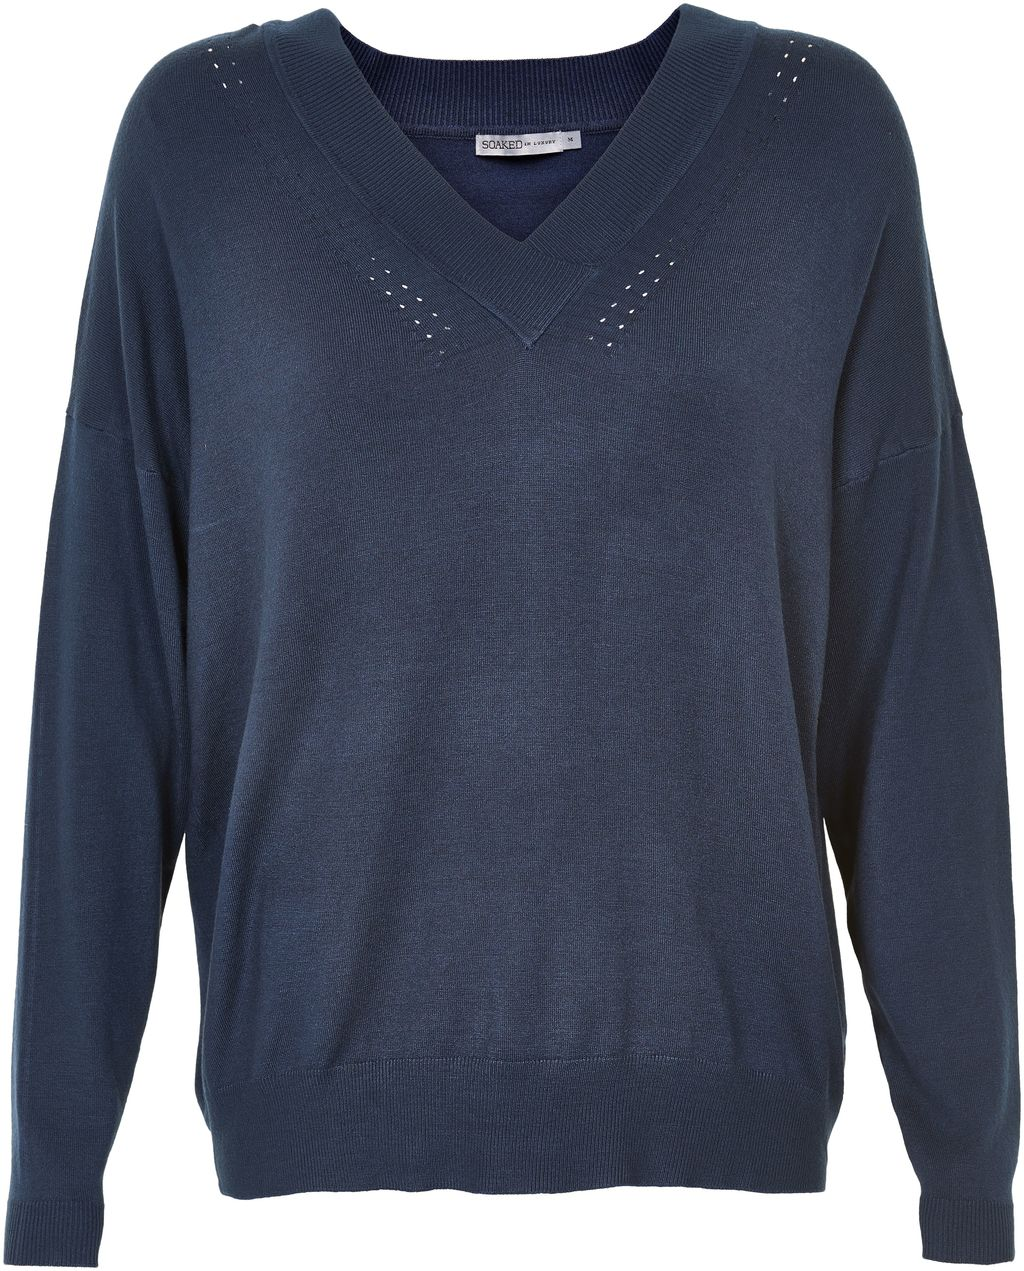 Oversized V Neck Jumper, Navy - neckline: v-neck; pattern: plain; length: below the bottom; style: standard; predominant colour: navy; occasions: casual, creative work; fibres: viscose/rayon - stretch; fit: loose; sleeve length: long sleeve; sleeve style: standard; texture group: knits/crochet; pattern type: knitted - fine stitch; season: s/s 2016; wardrobe: basic